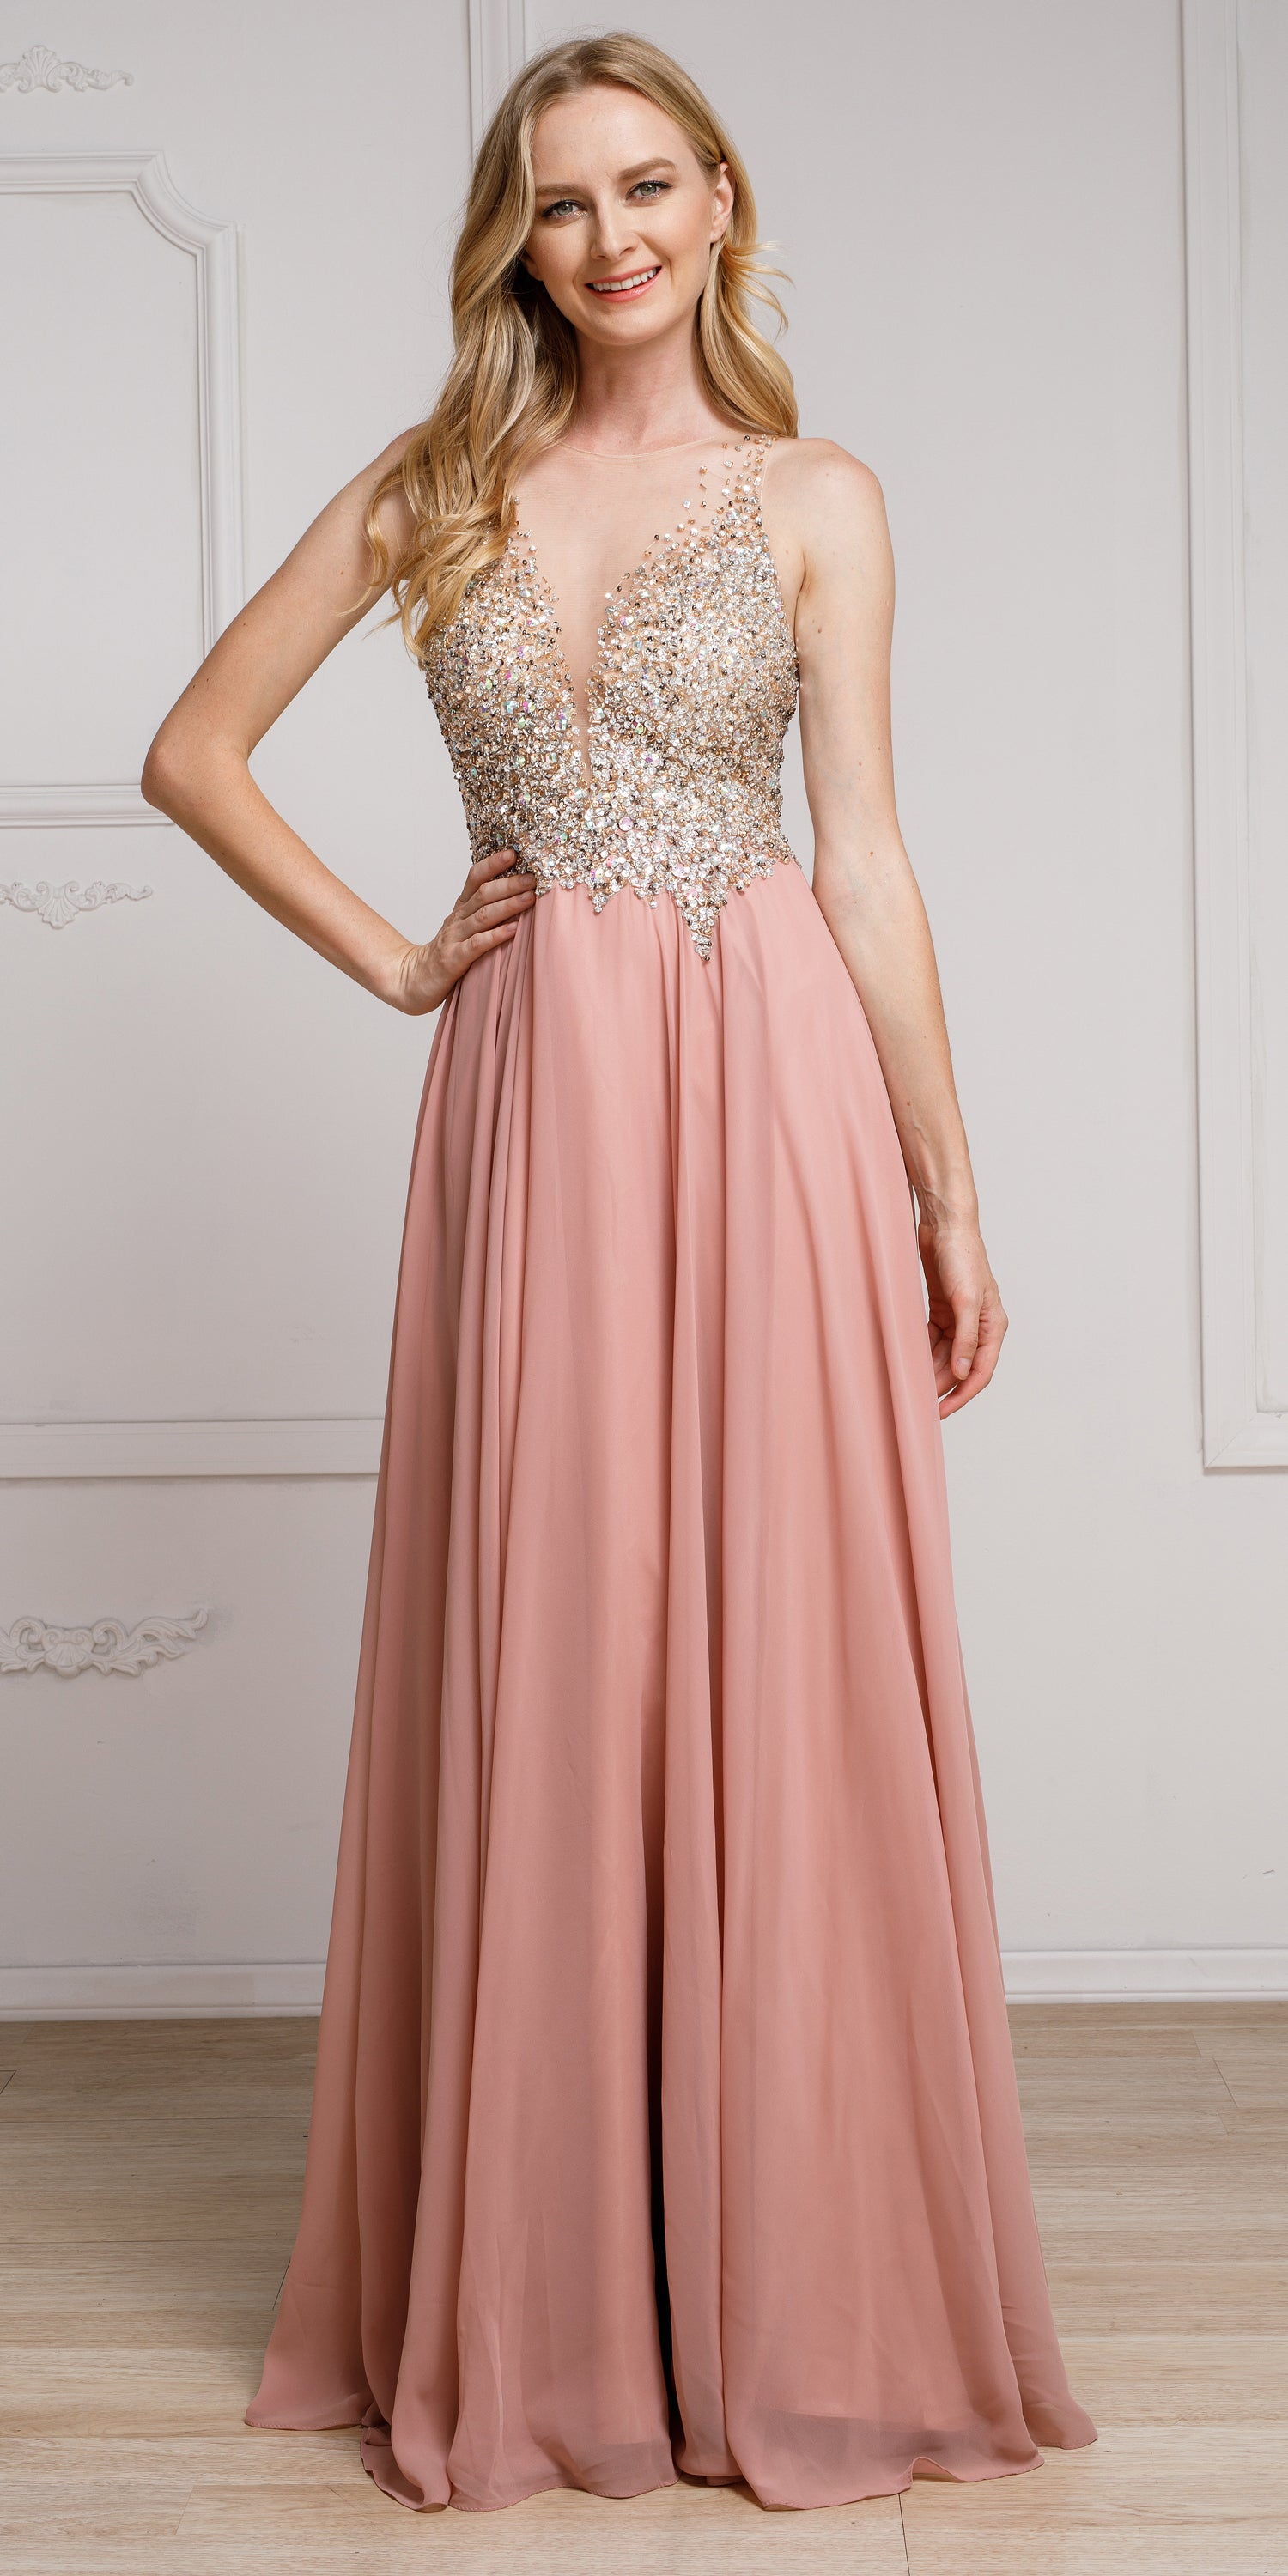 Image of Sequined Plunging Neckine Prom Gown in Dusty Rose